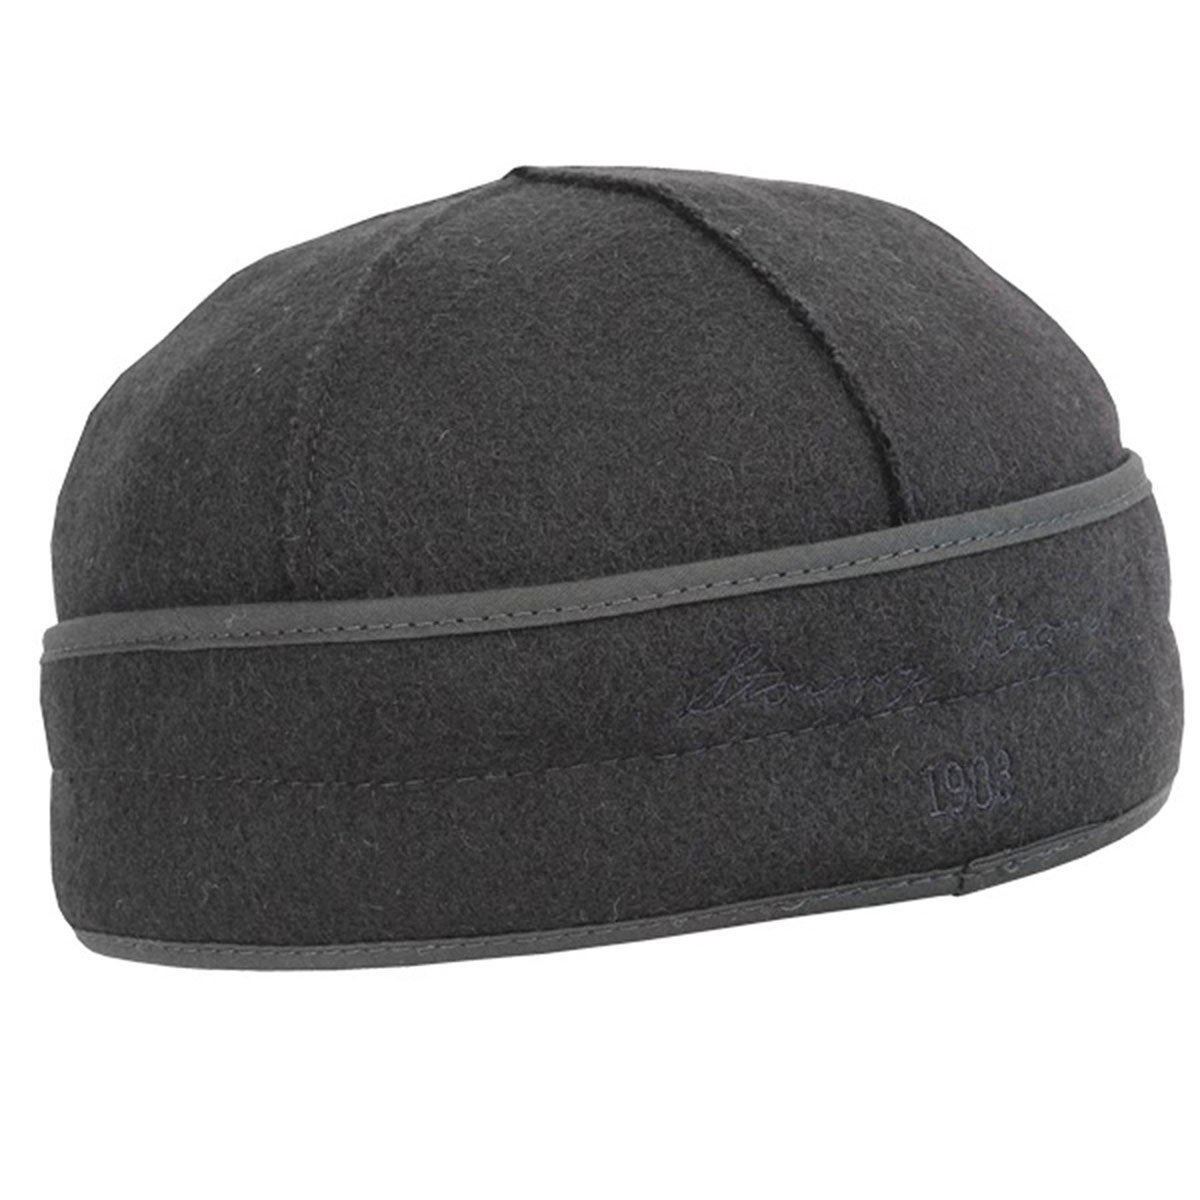 Men's Vintage Workwear – 1920s, 1930s, 1940s, 1950s Brimless Cap $34.99 AT vintagedancer.com